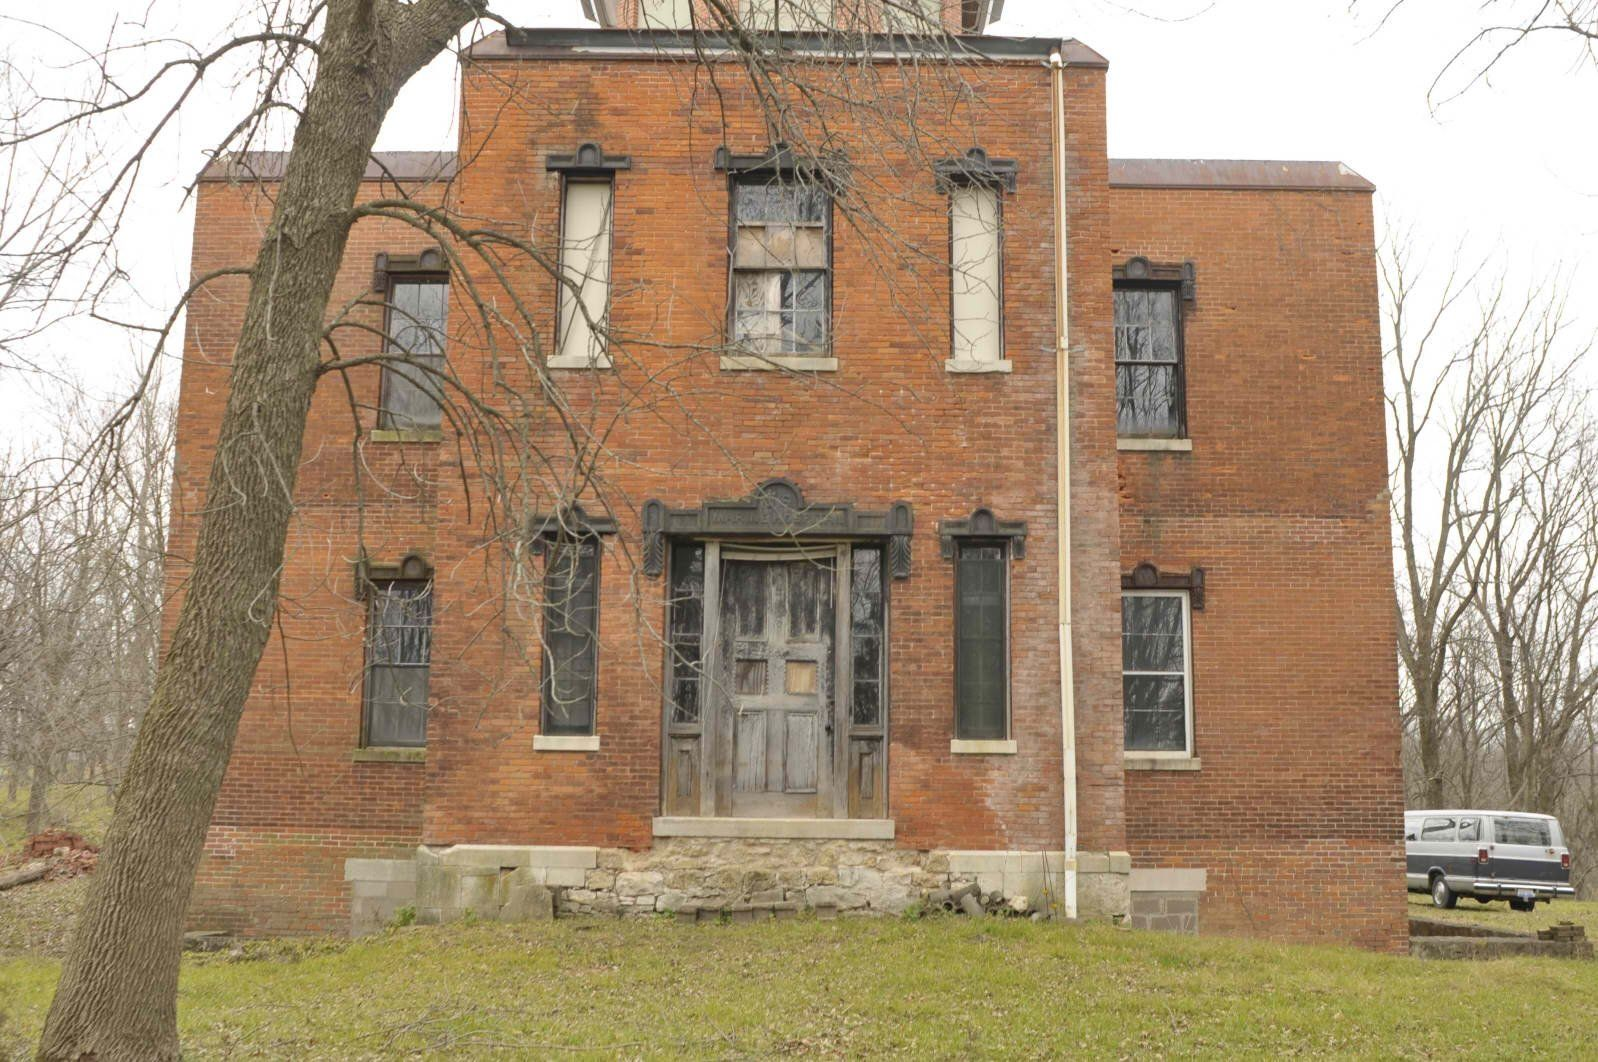 Diy Historic Abandoned Homes For Sale Creepy Old Houses